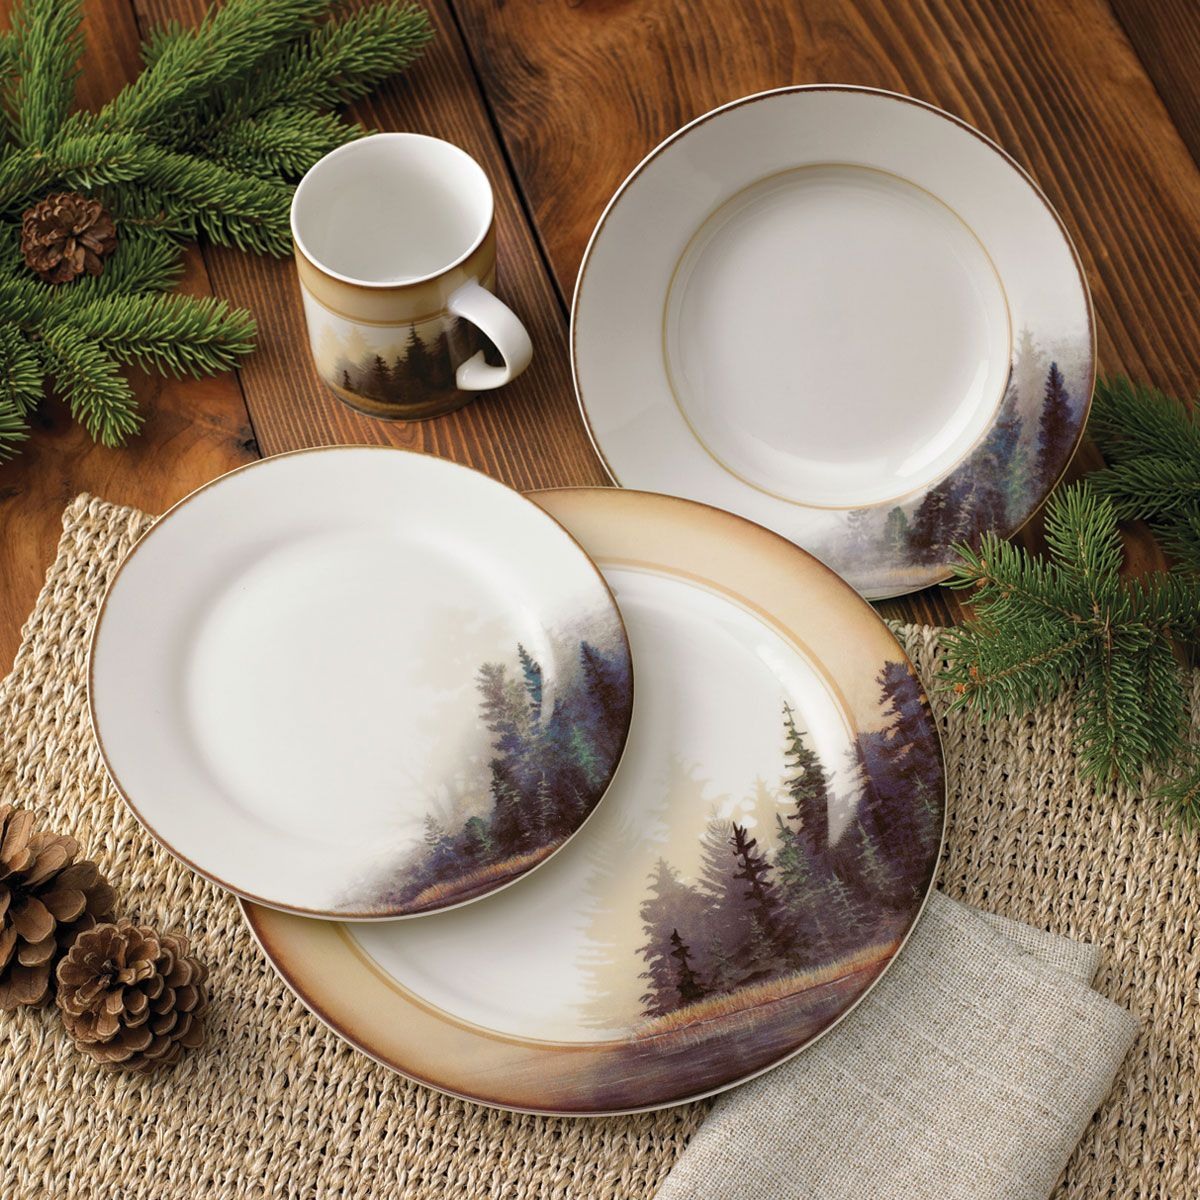 Rustic Wildlife Dinnerware Sets With Moose Amp Bear Designs